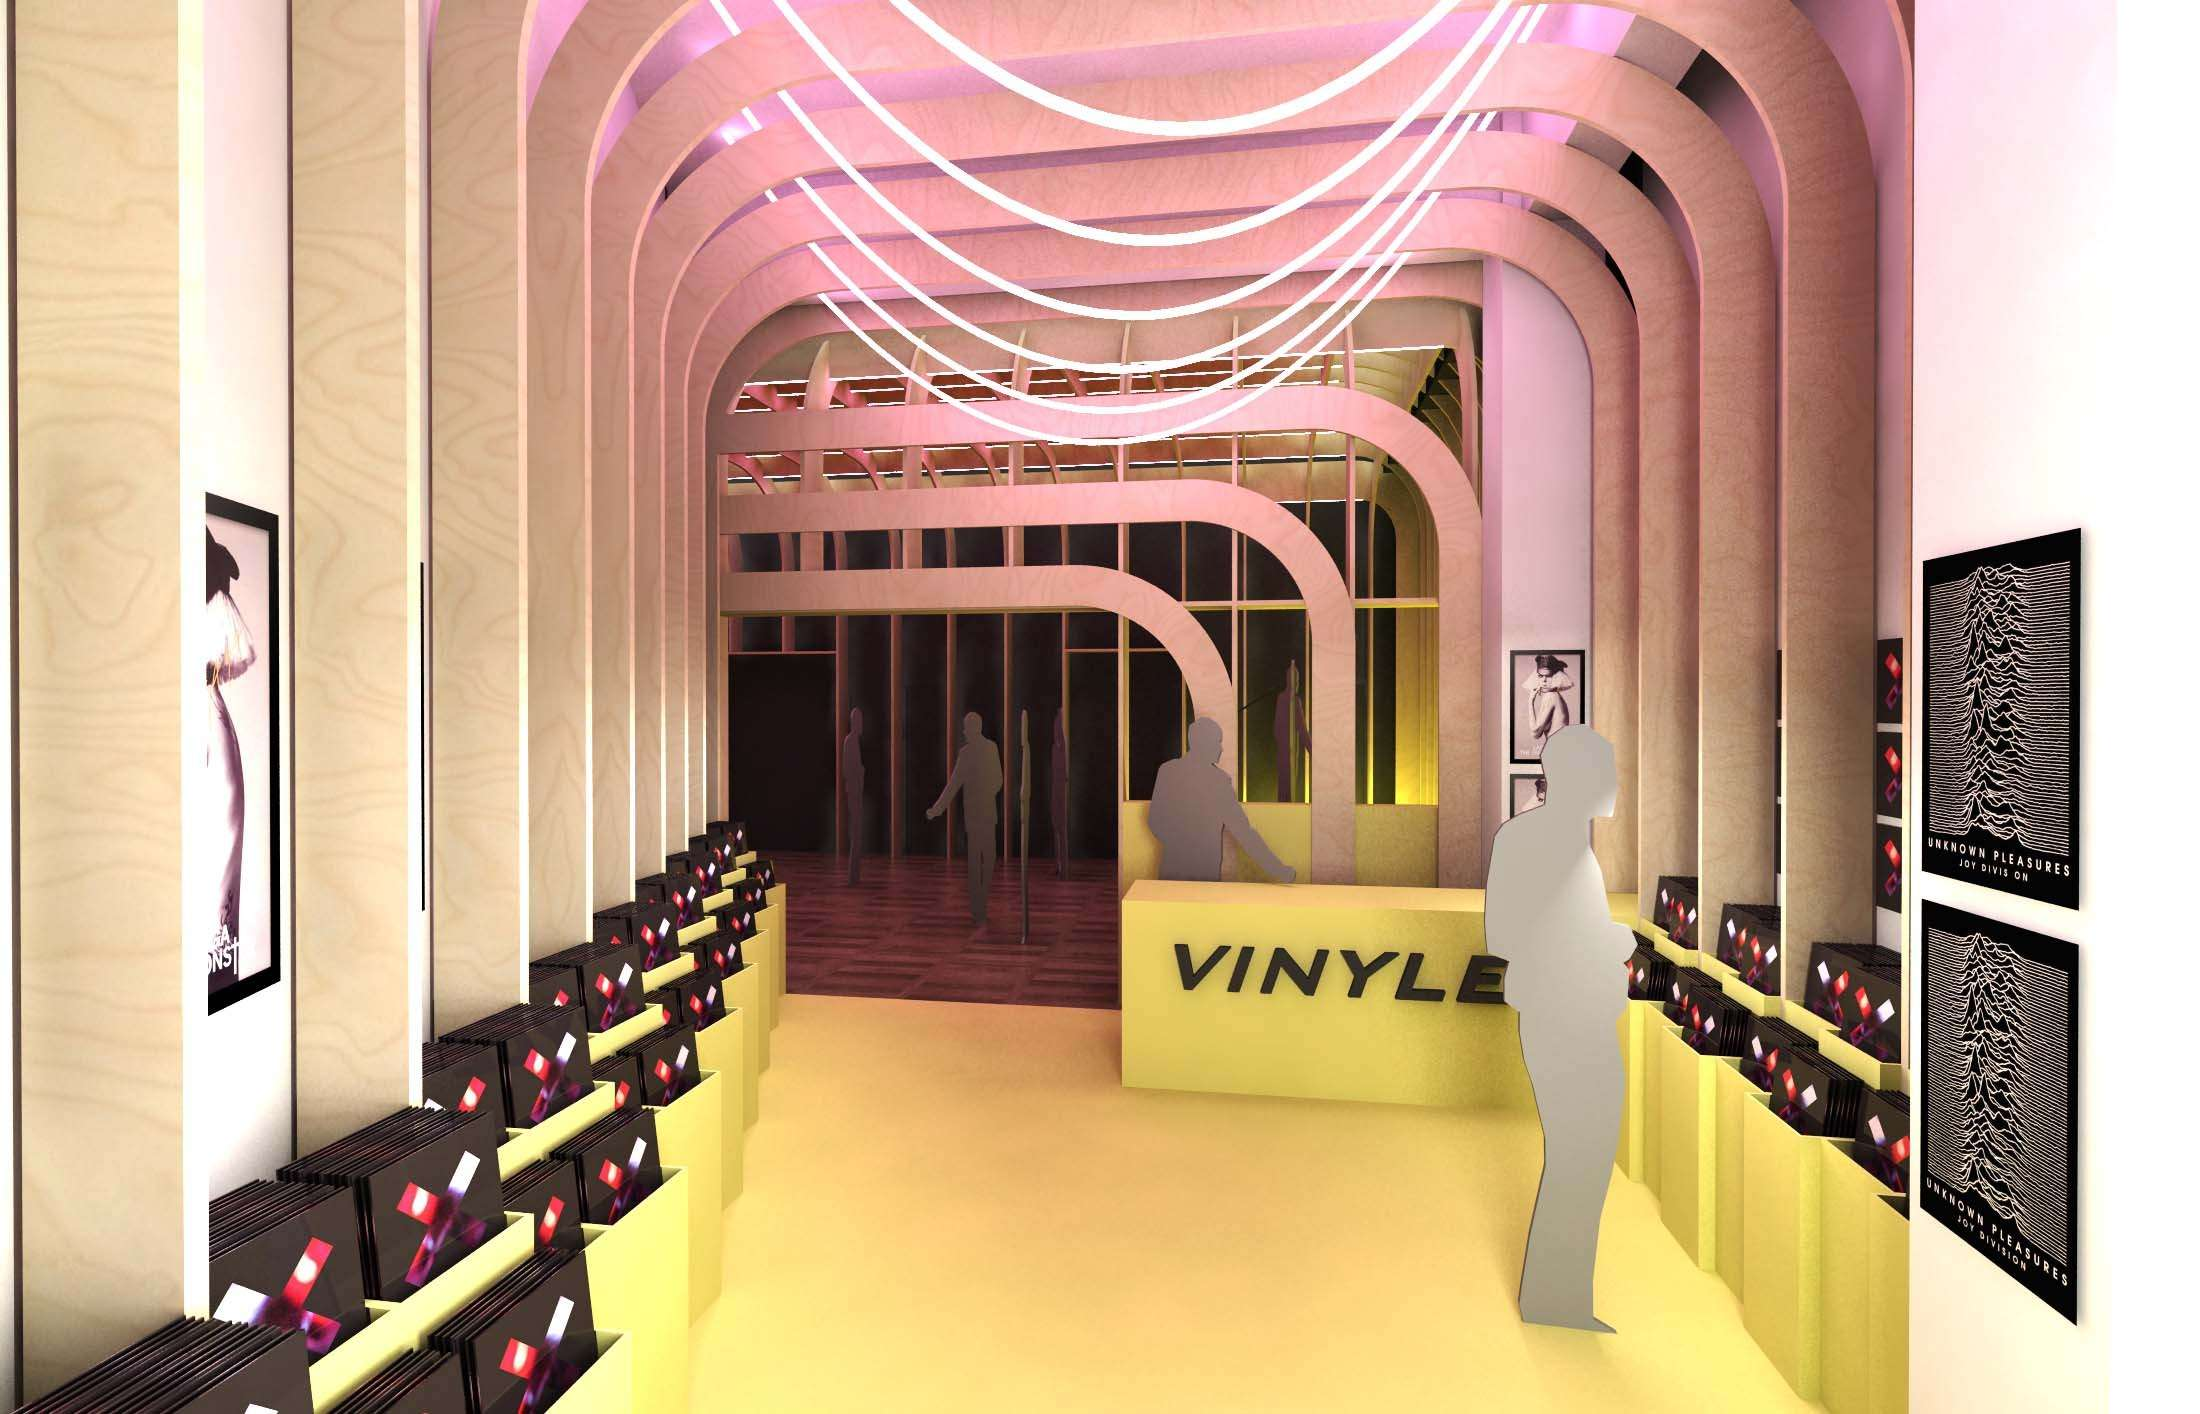 Boutique de vinyles